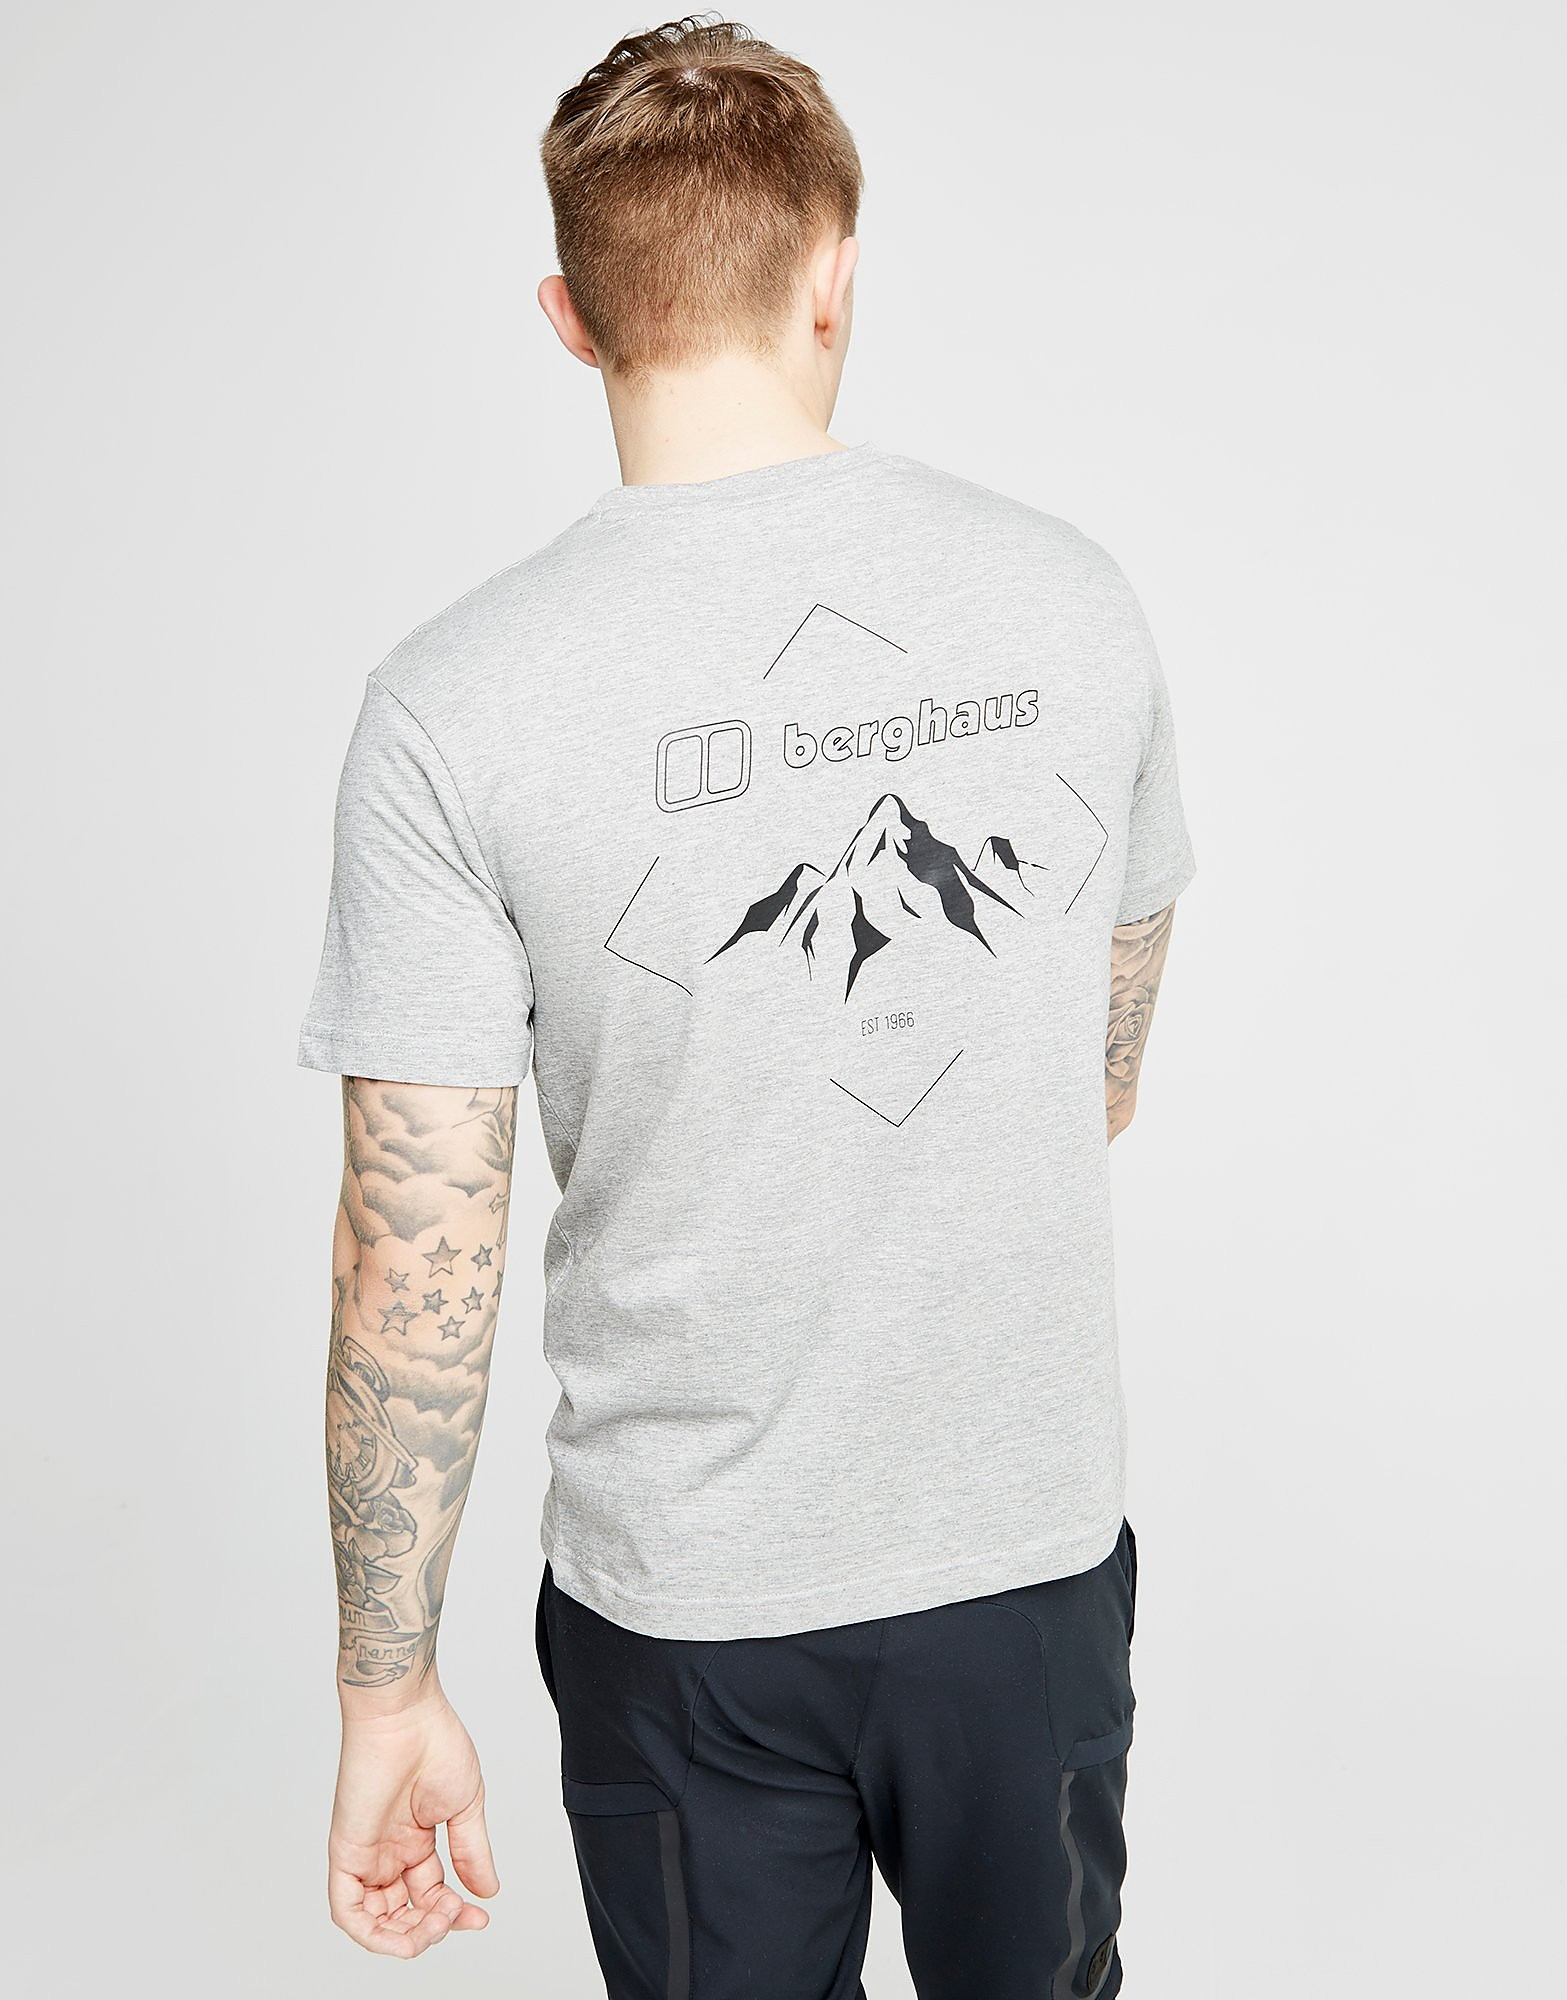 Berghaus Mountain T-Shirt